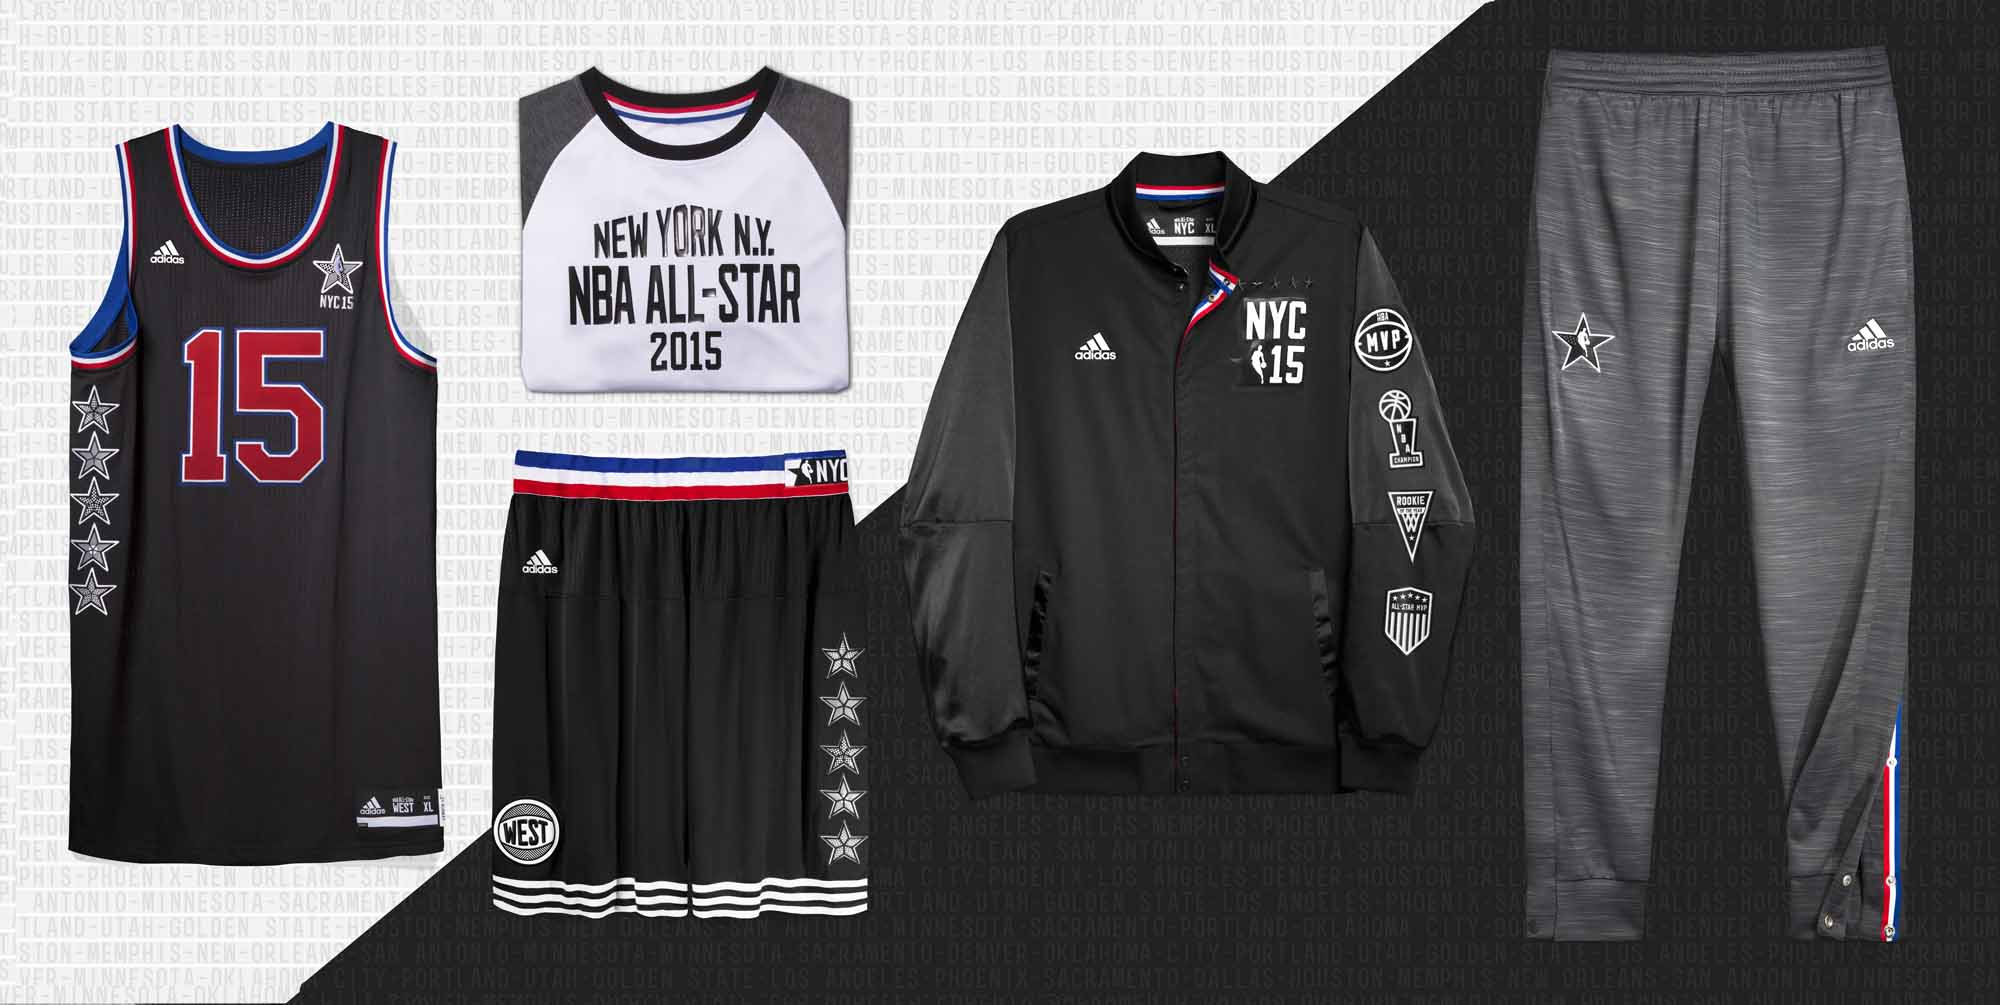 2015 Nba All Star Uniforms By Adidas Detailed Look